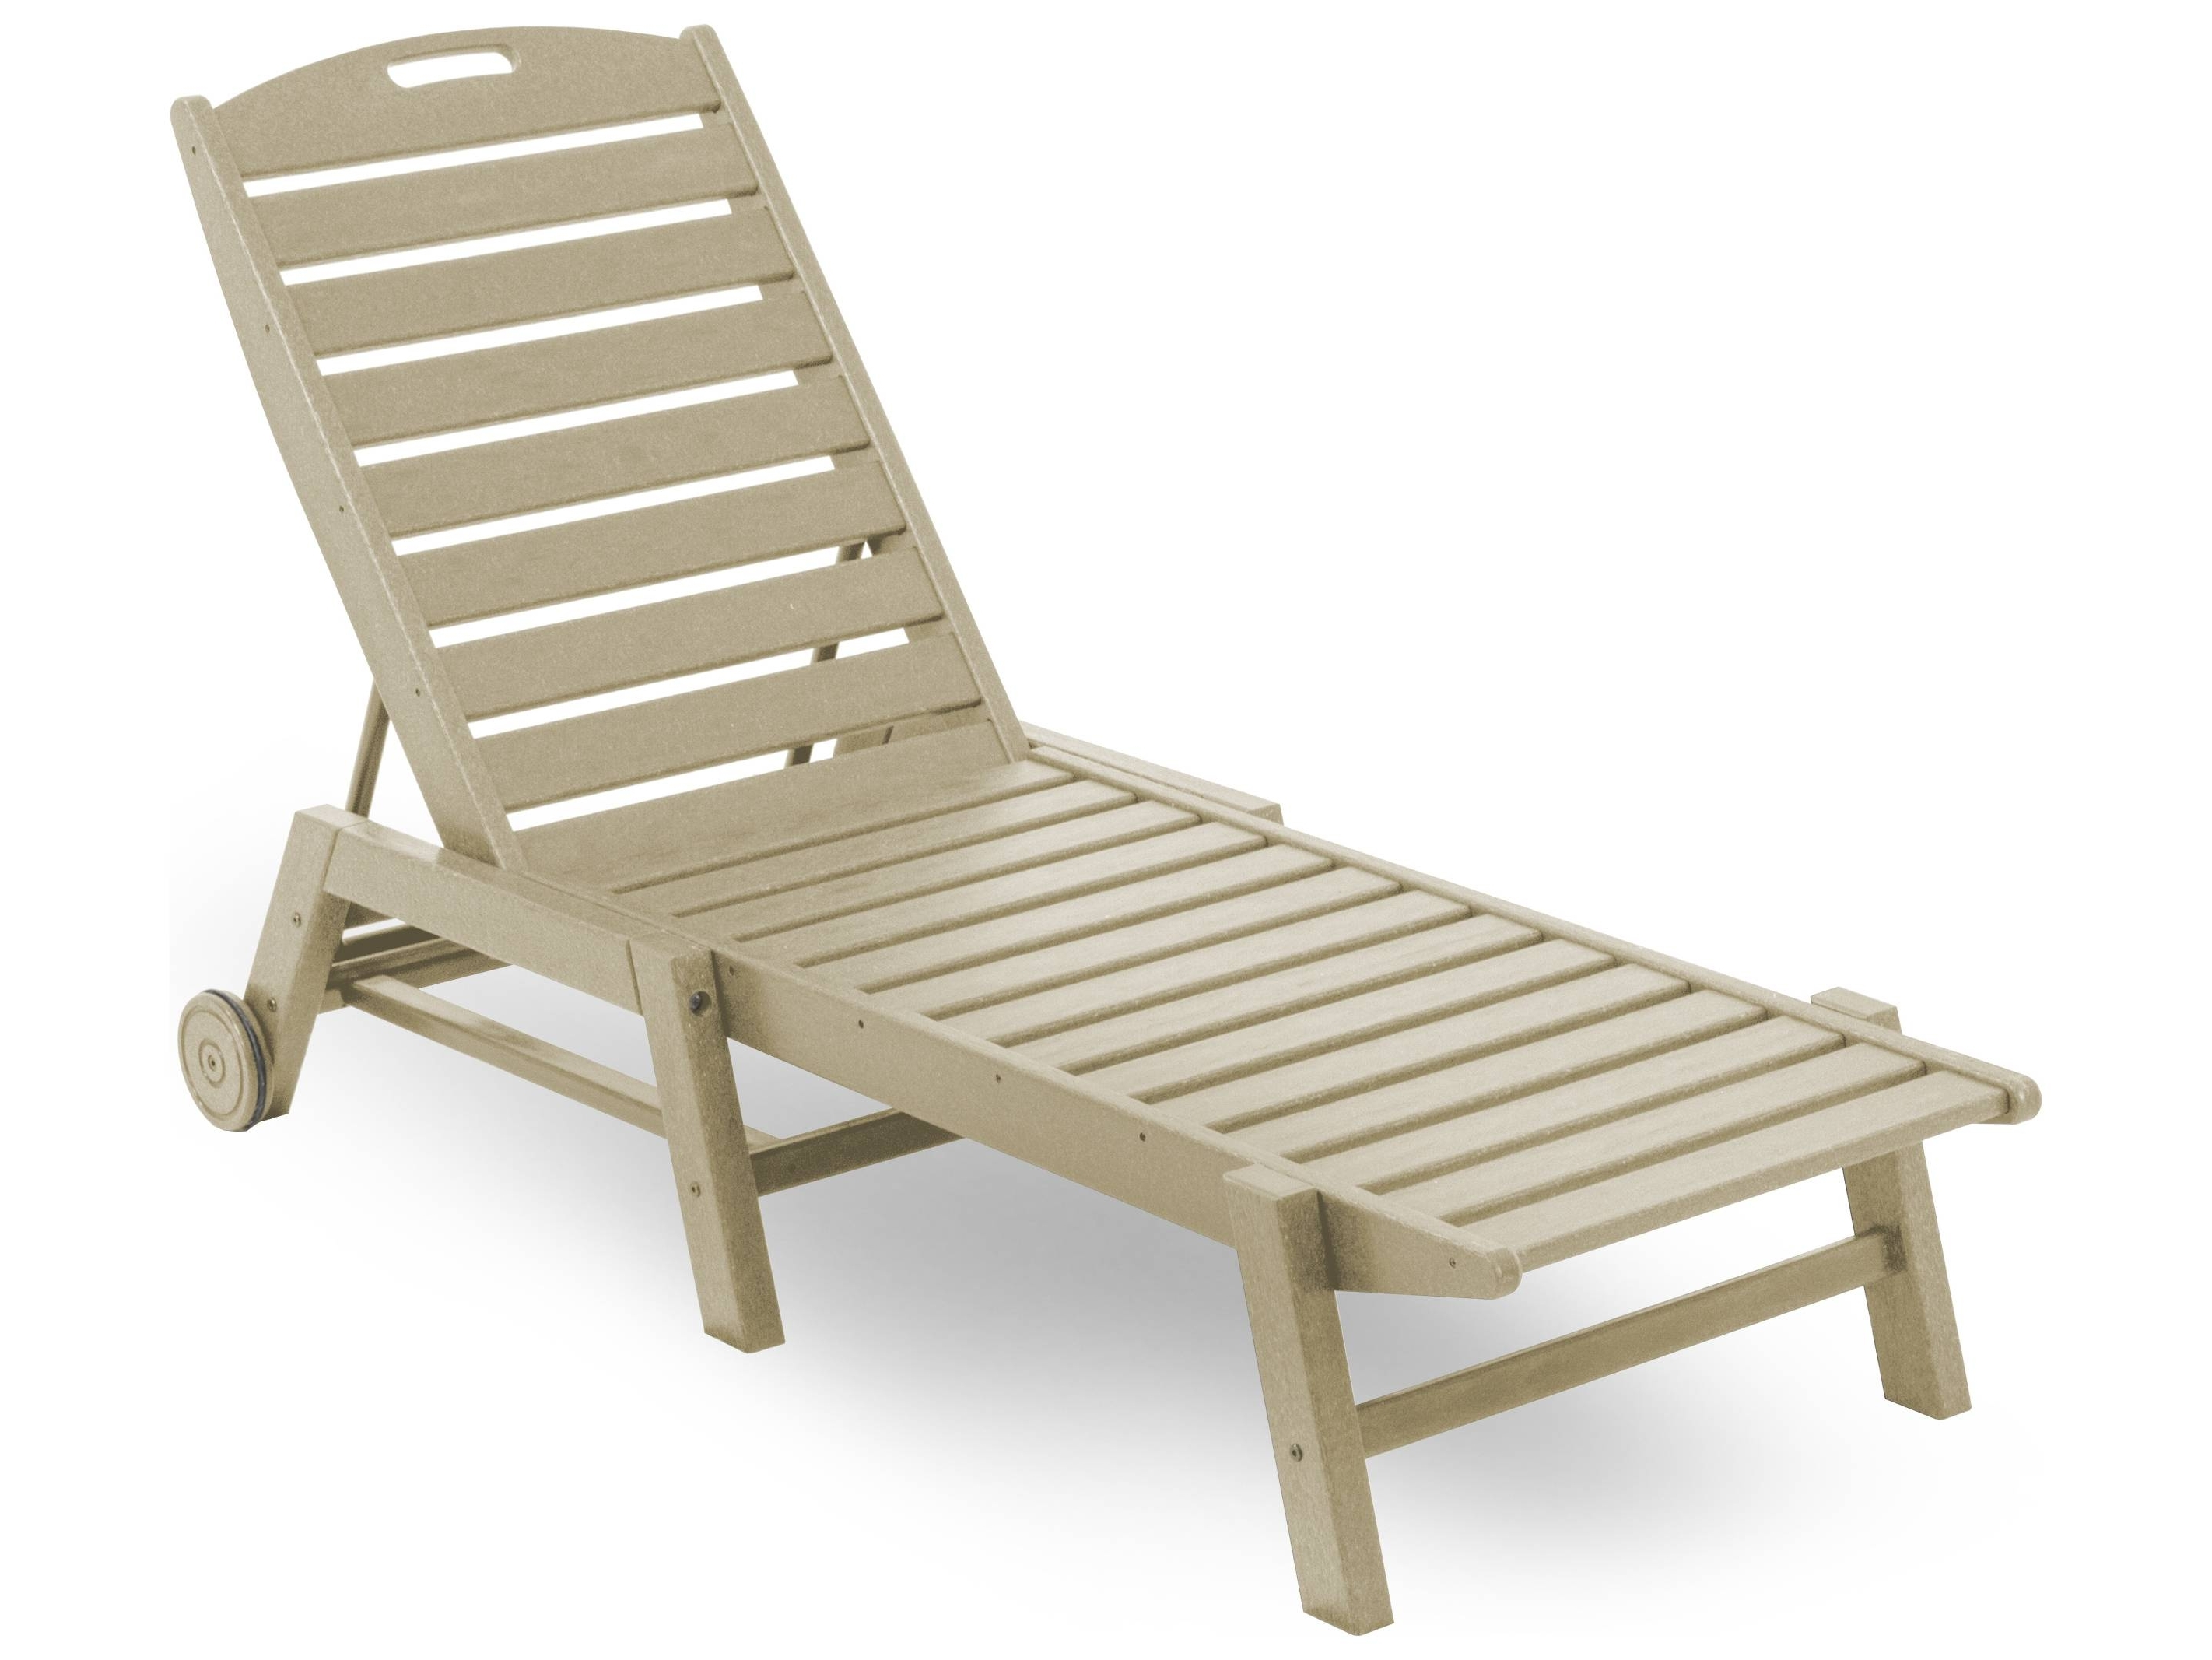 Newest Resin Chaise Lounge Chairs Pertaining To Convertible Chair : Furniture Outside Lounge Chairs Resin Outdoor (View 10 of 15)